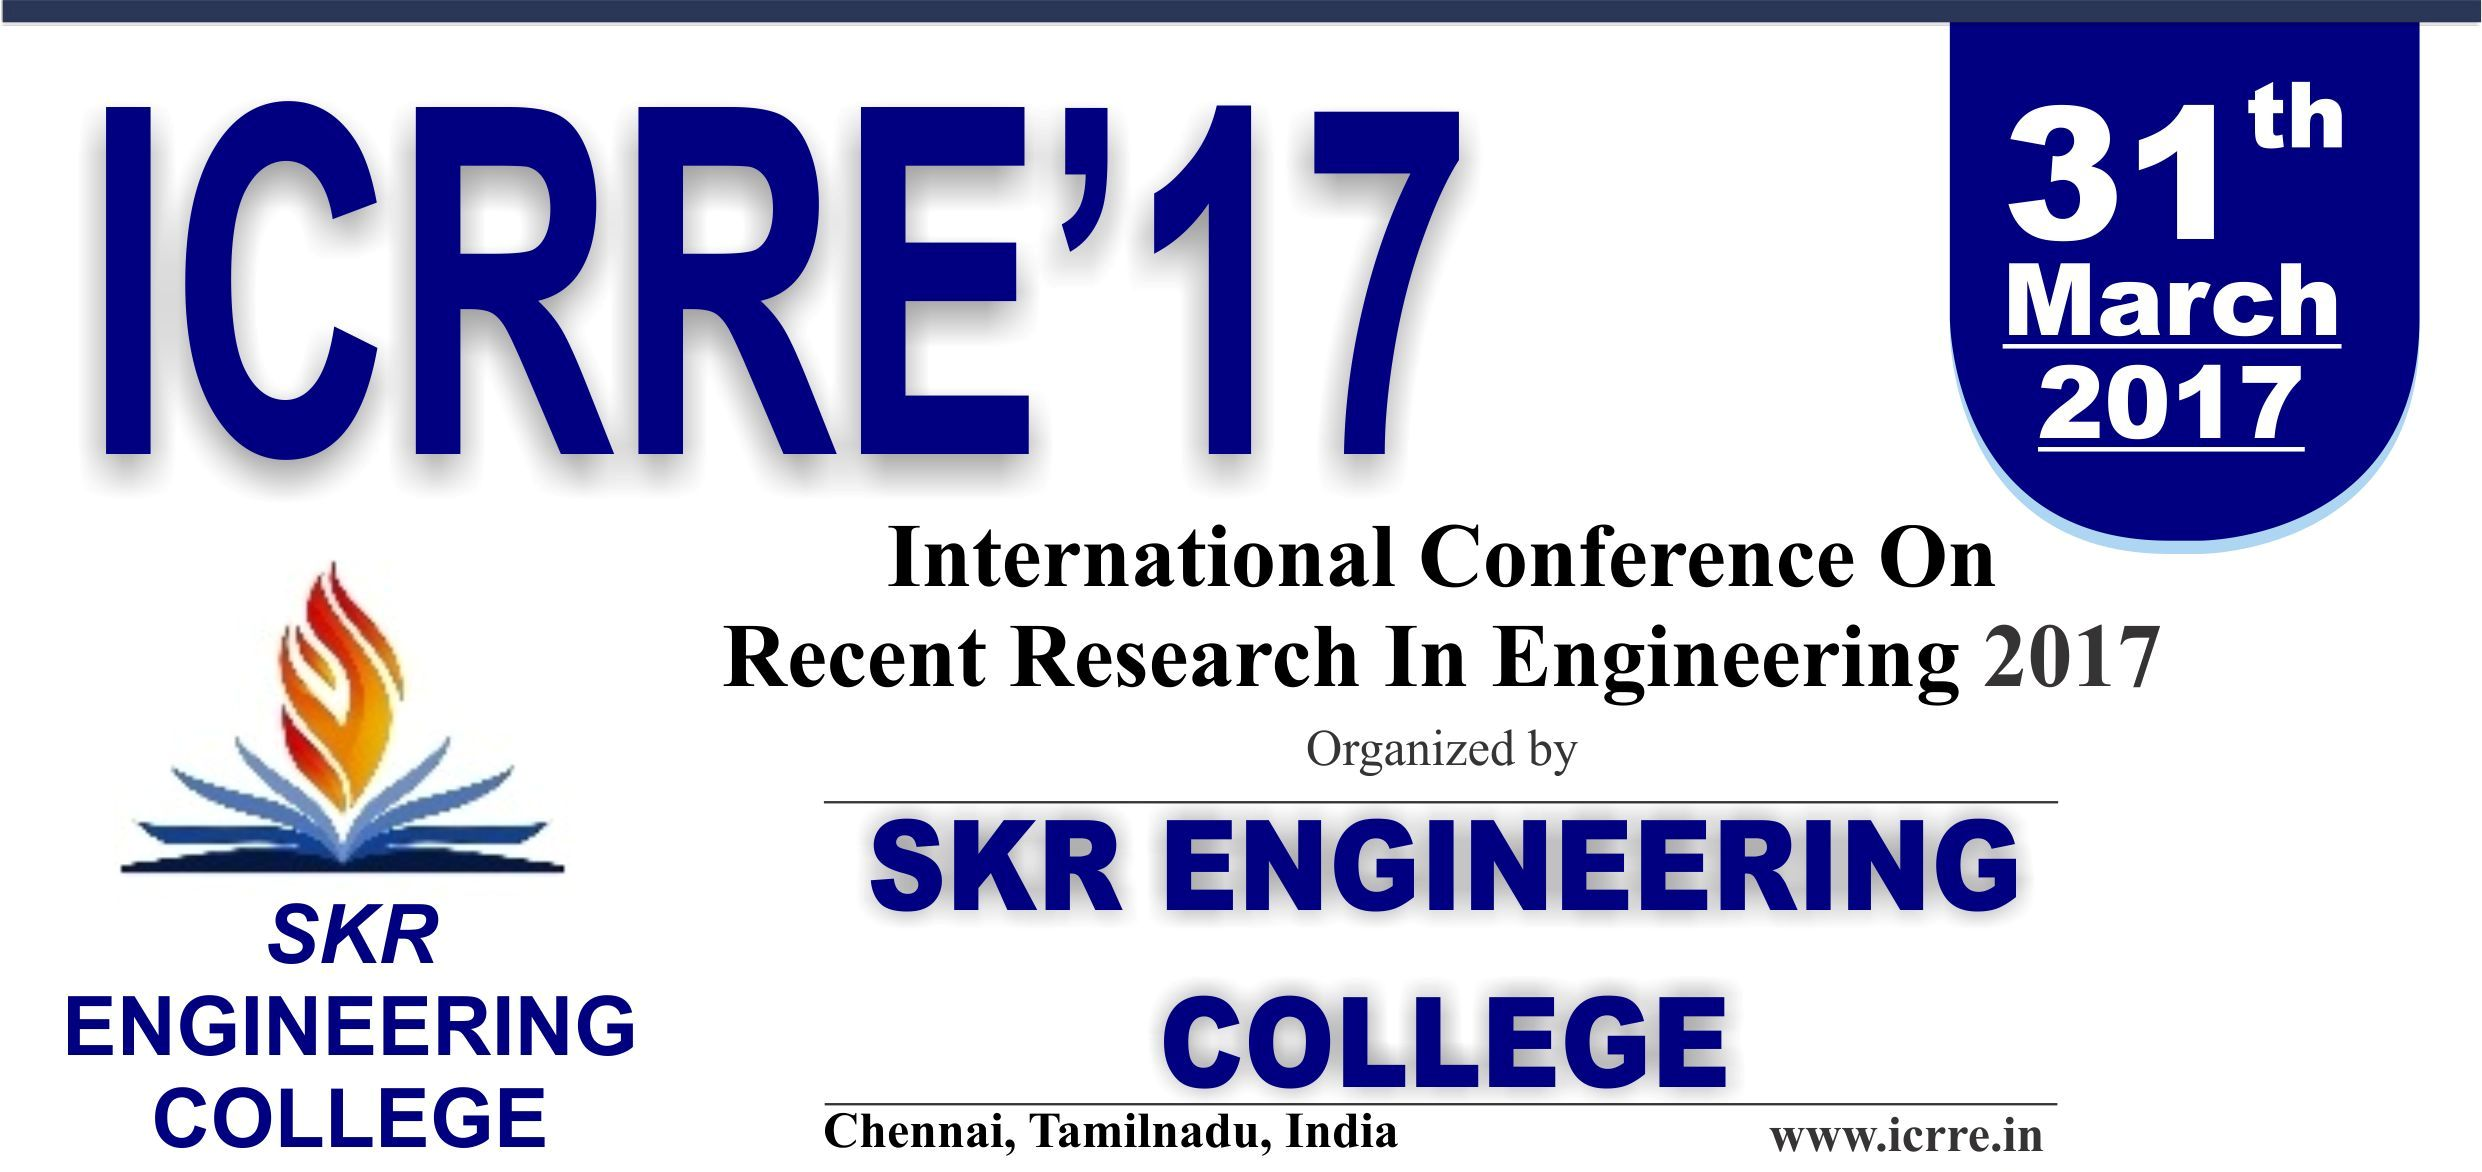 International Conference on Recent Research in Engineering ICRRE 2017